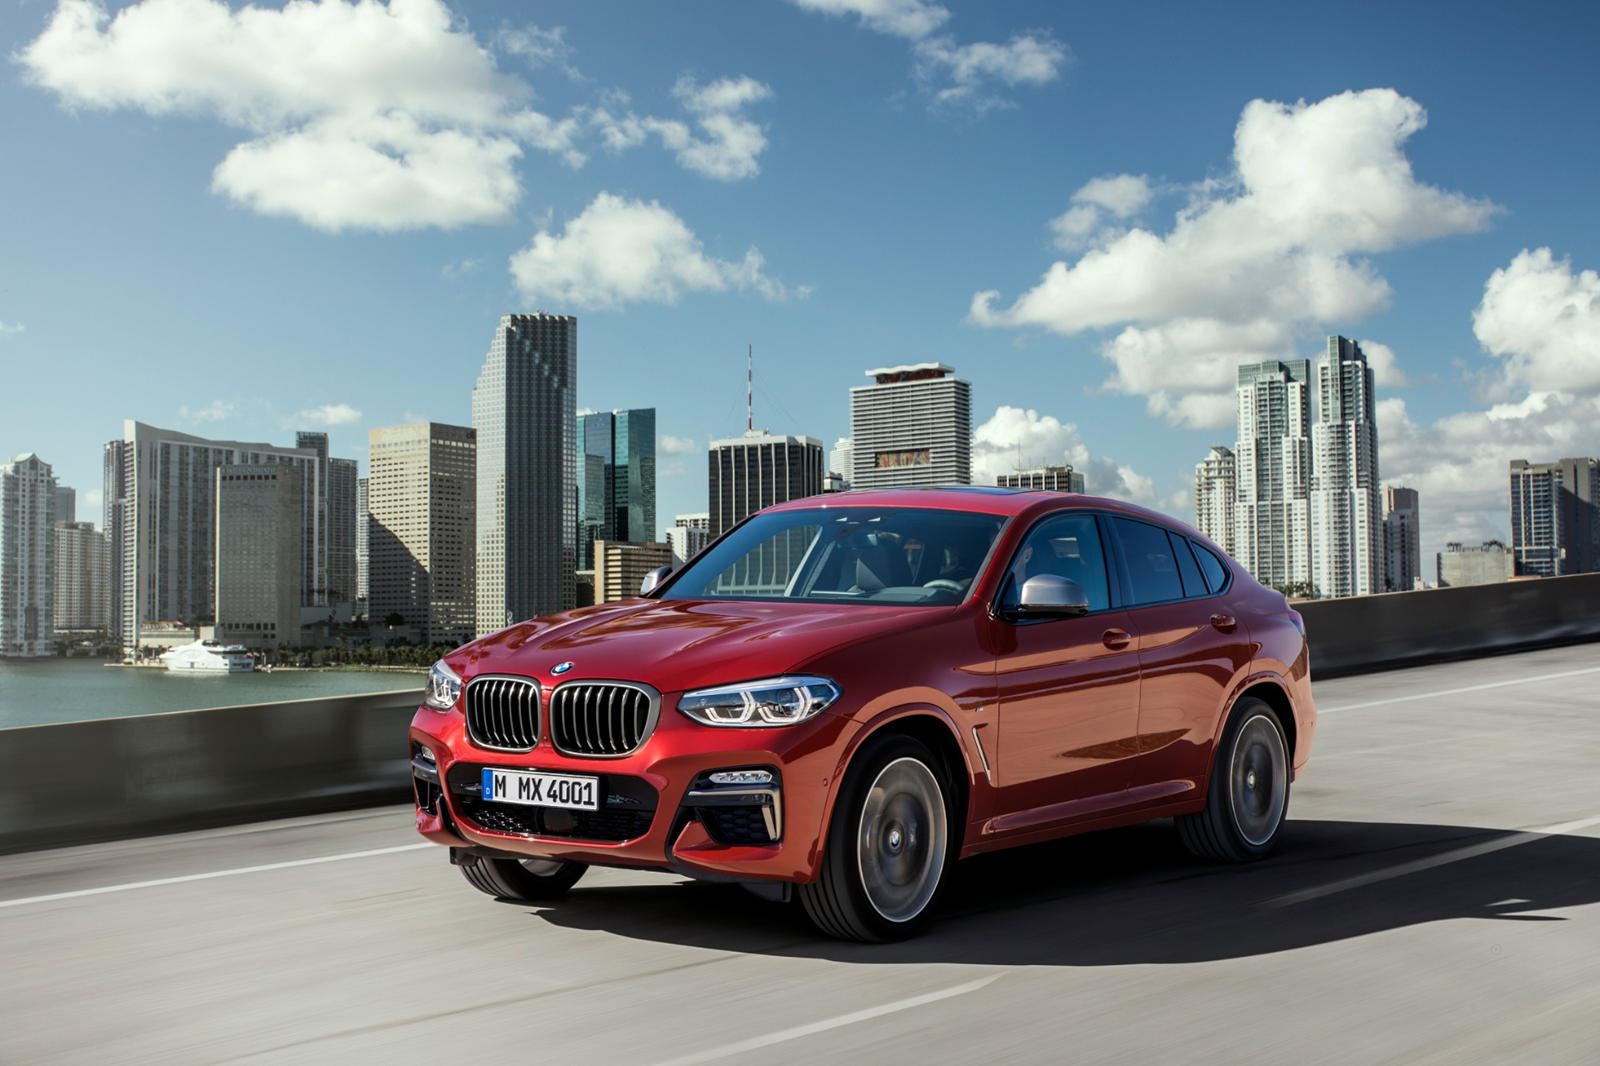 2020 BMW X4 SUV Rear View